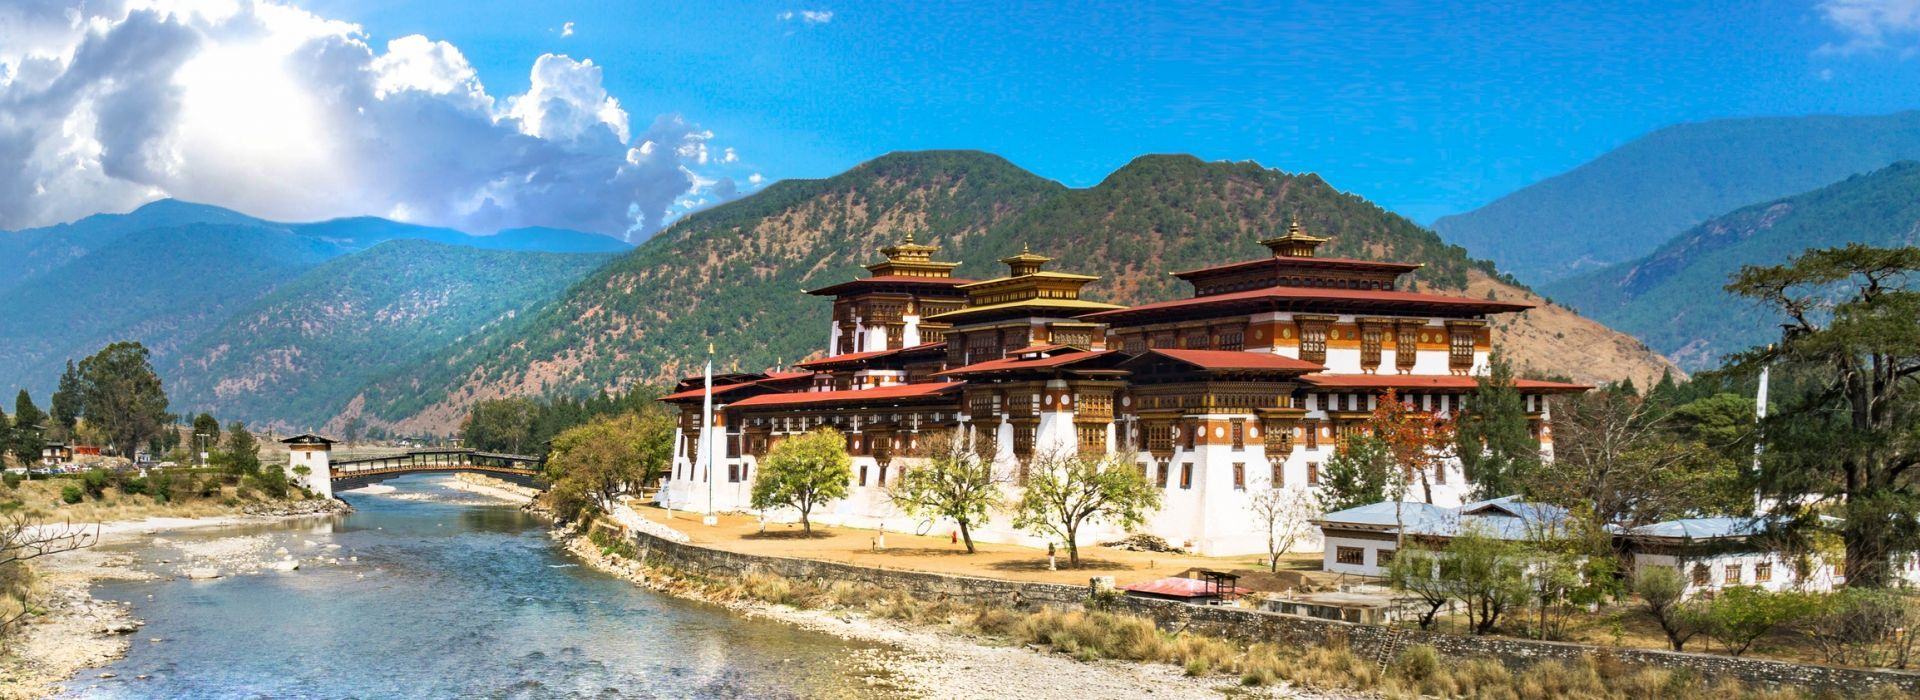 Sightseeing Tours in Bhutan